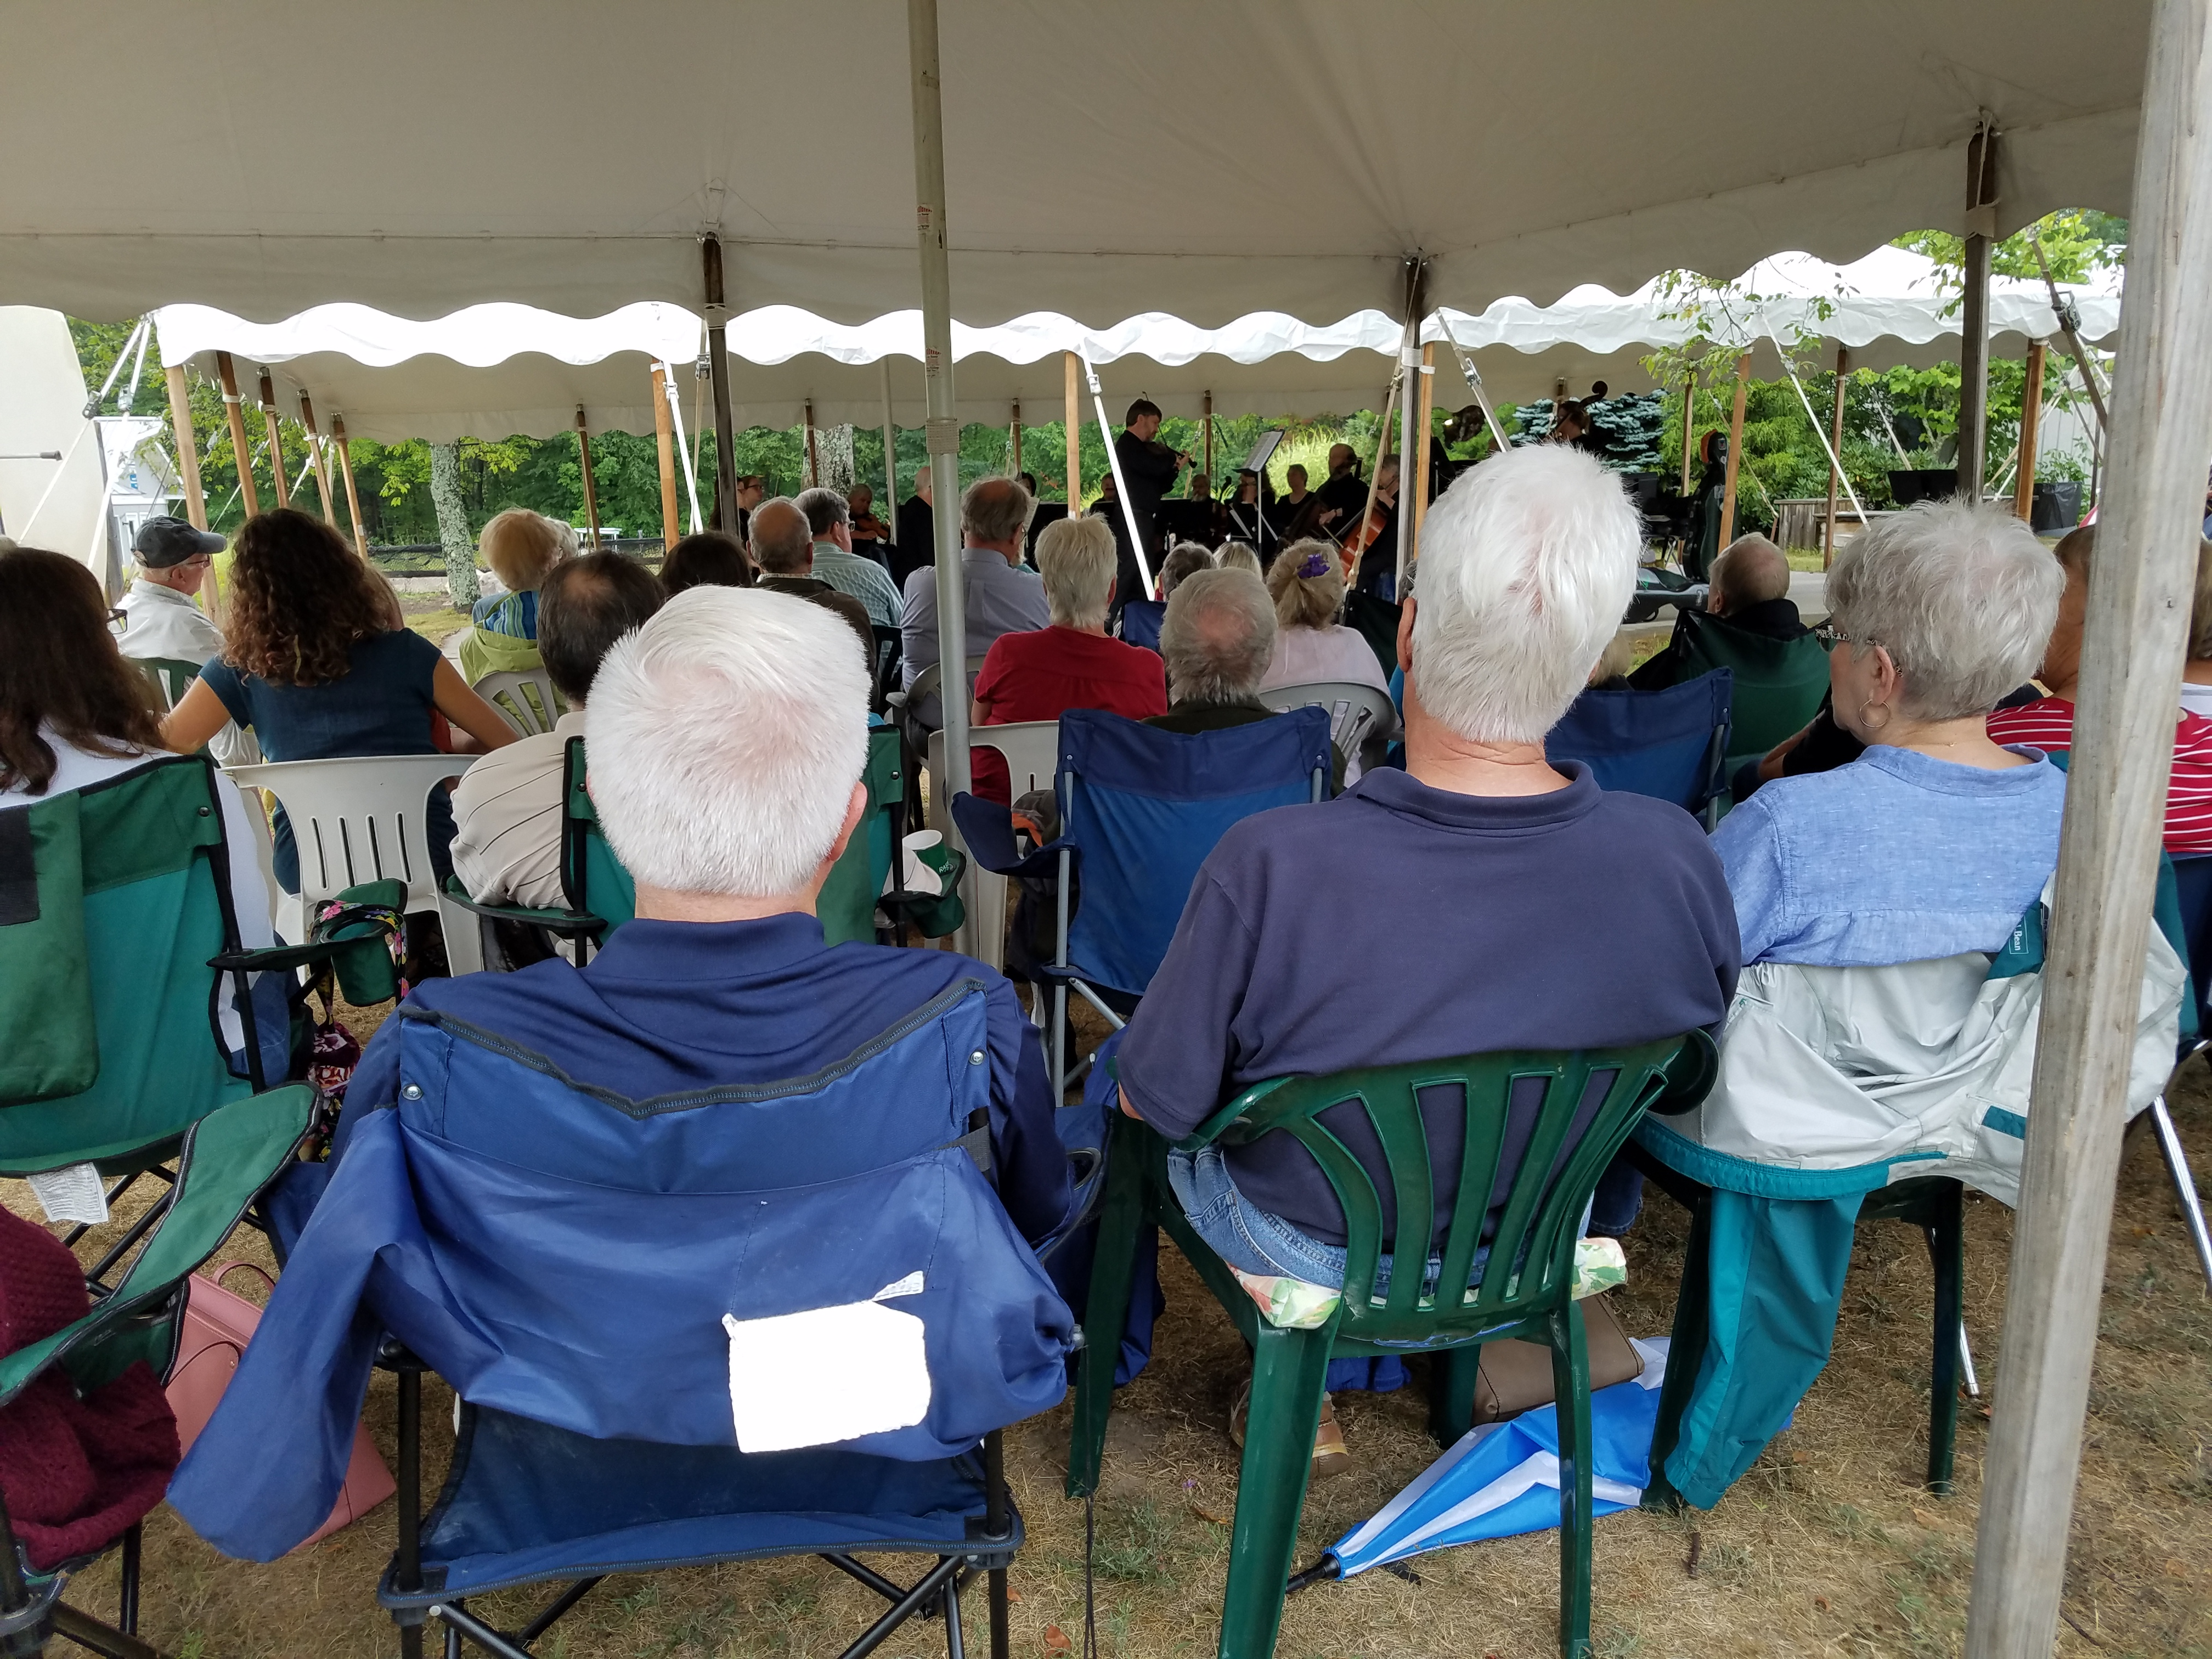 Celestial Music with Great Lakes Chamber Orchestra